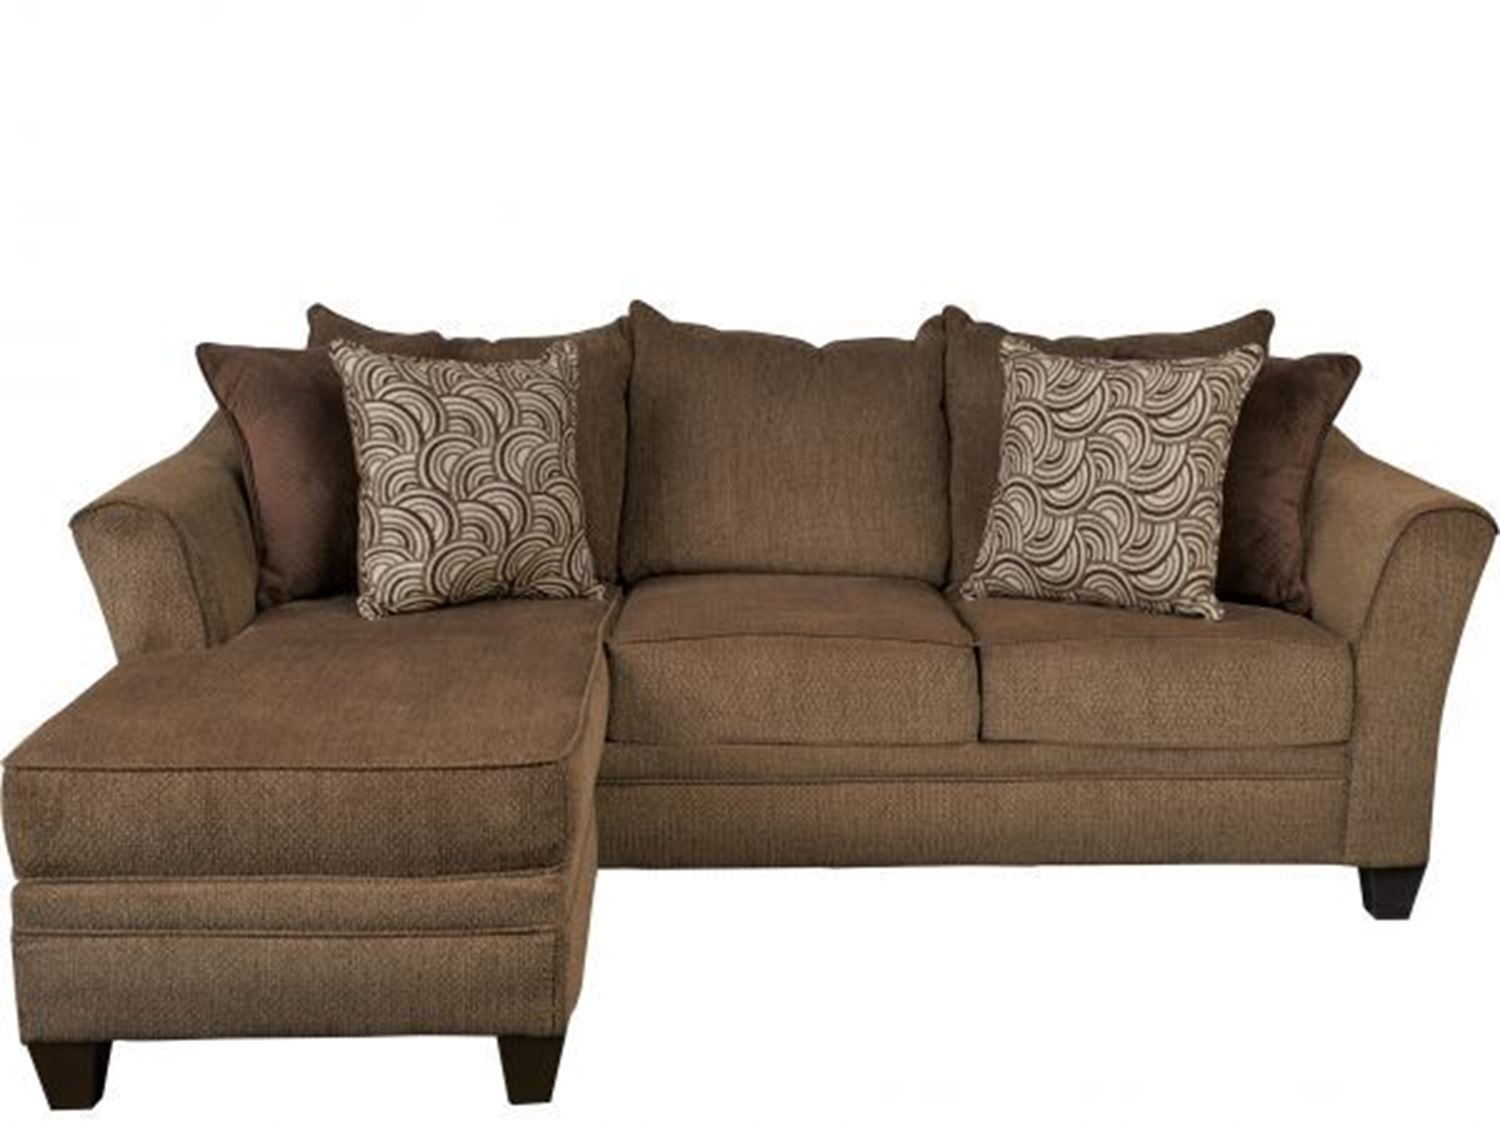 Zander Sofa Chaise | Walker Furniture Las Vegas inside Collins Sofa Sectionals With Reversible Chaise (Image 30 of 30)